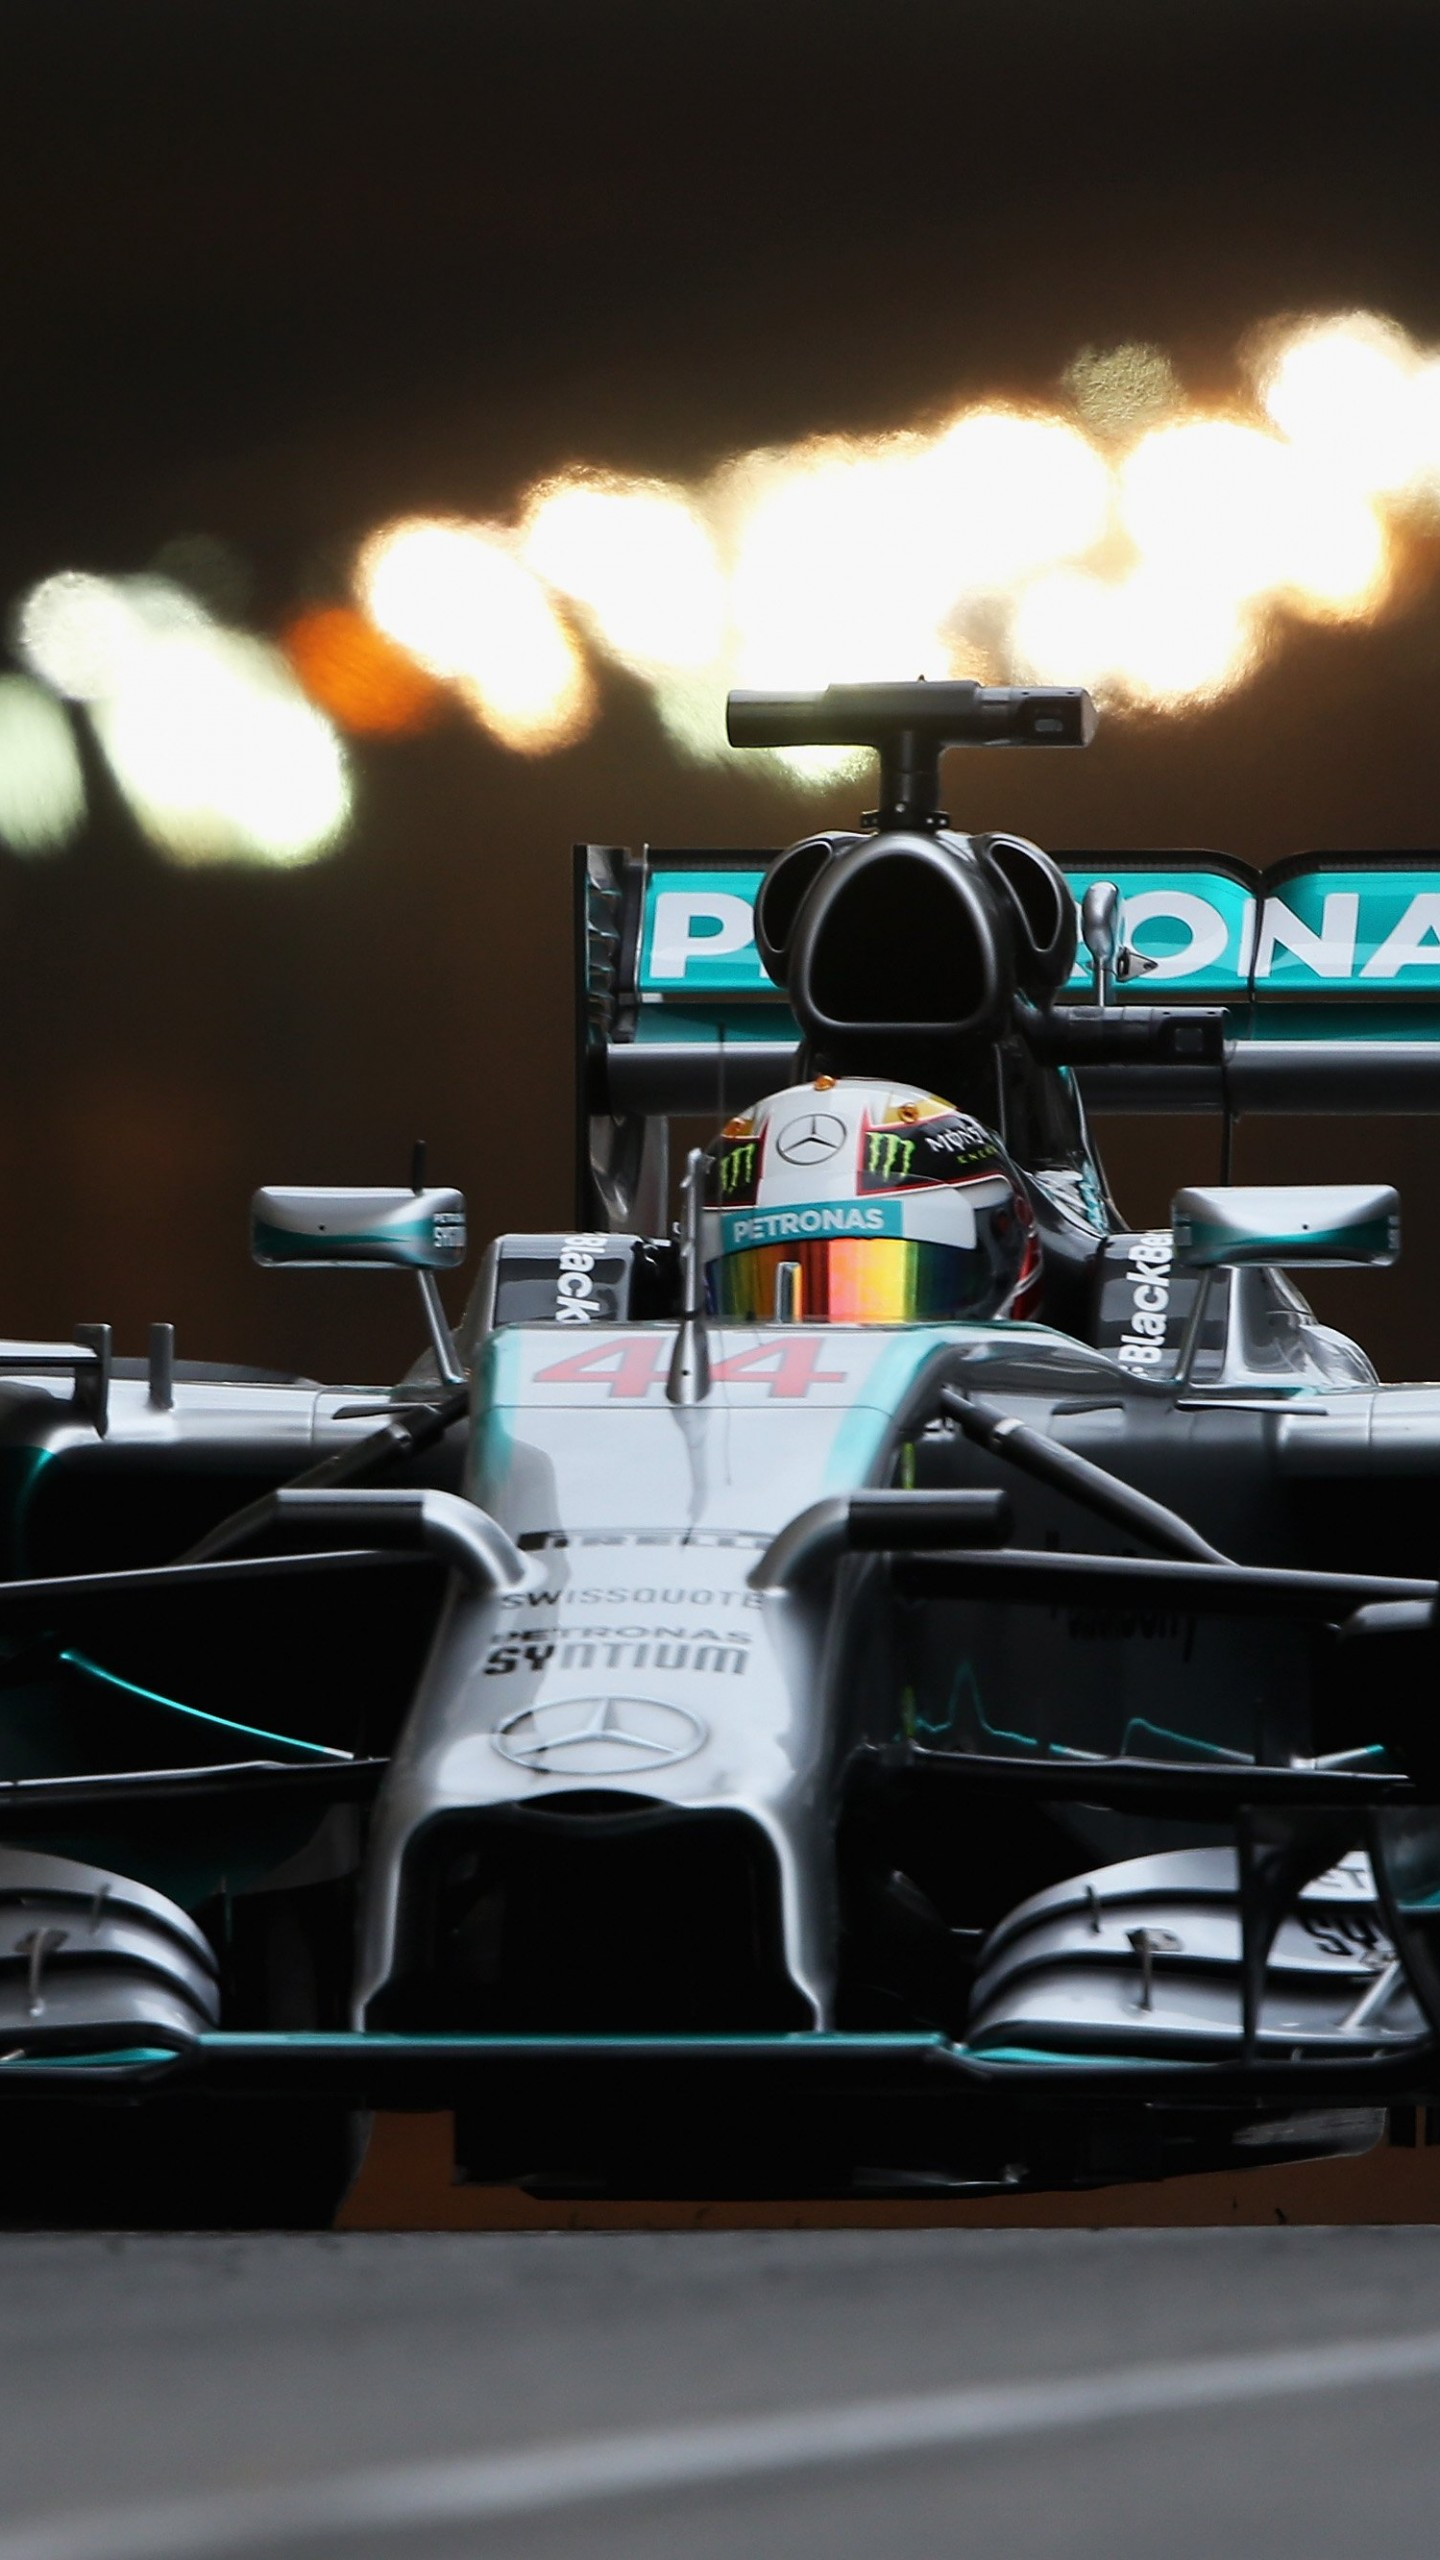 Mercedes Benz Formula 1 F1 Lewis Hamilton Helmet Lewis Hamilton Mercedes F1 Wallpaper 4k 640x1138 Download Hd Wallpaper Wallpapertip